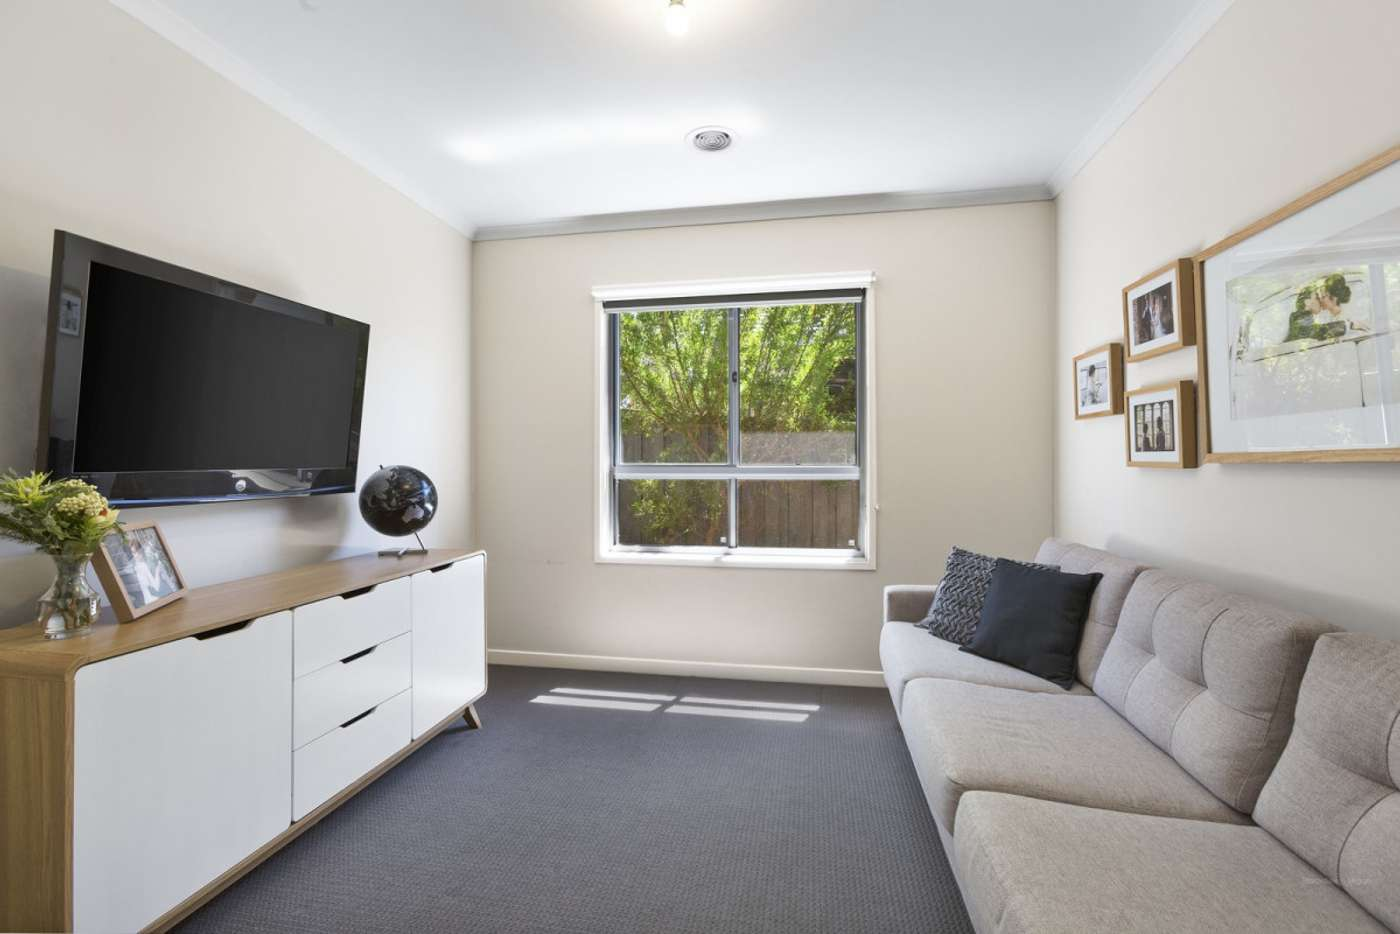 Sixth view of Homely house listing, 7 Park Edge Tce, Portarlington VIC 3223